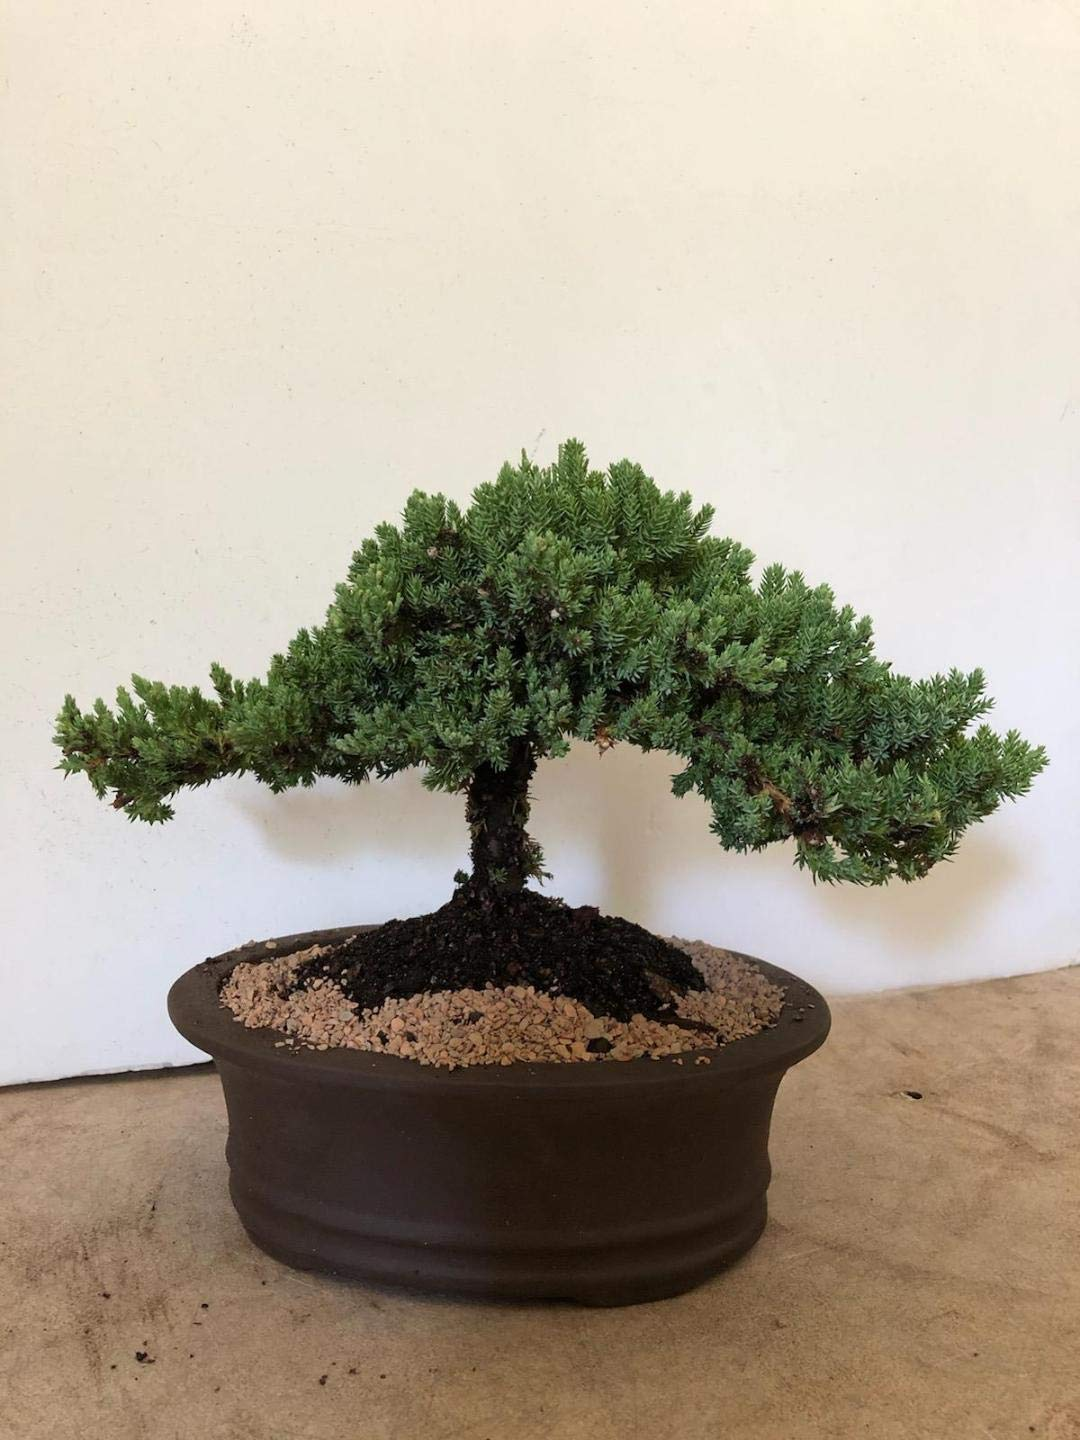 Eve's Garden Japanese Juniper Bonsai Tree, 12 Years Old Japanese Juniper, Planted in 12 Inch Ceramic Container, Outdoor Bonsai ! ! ! Cannot Ship to CA California ! ! !